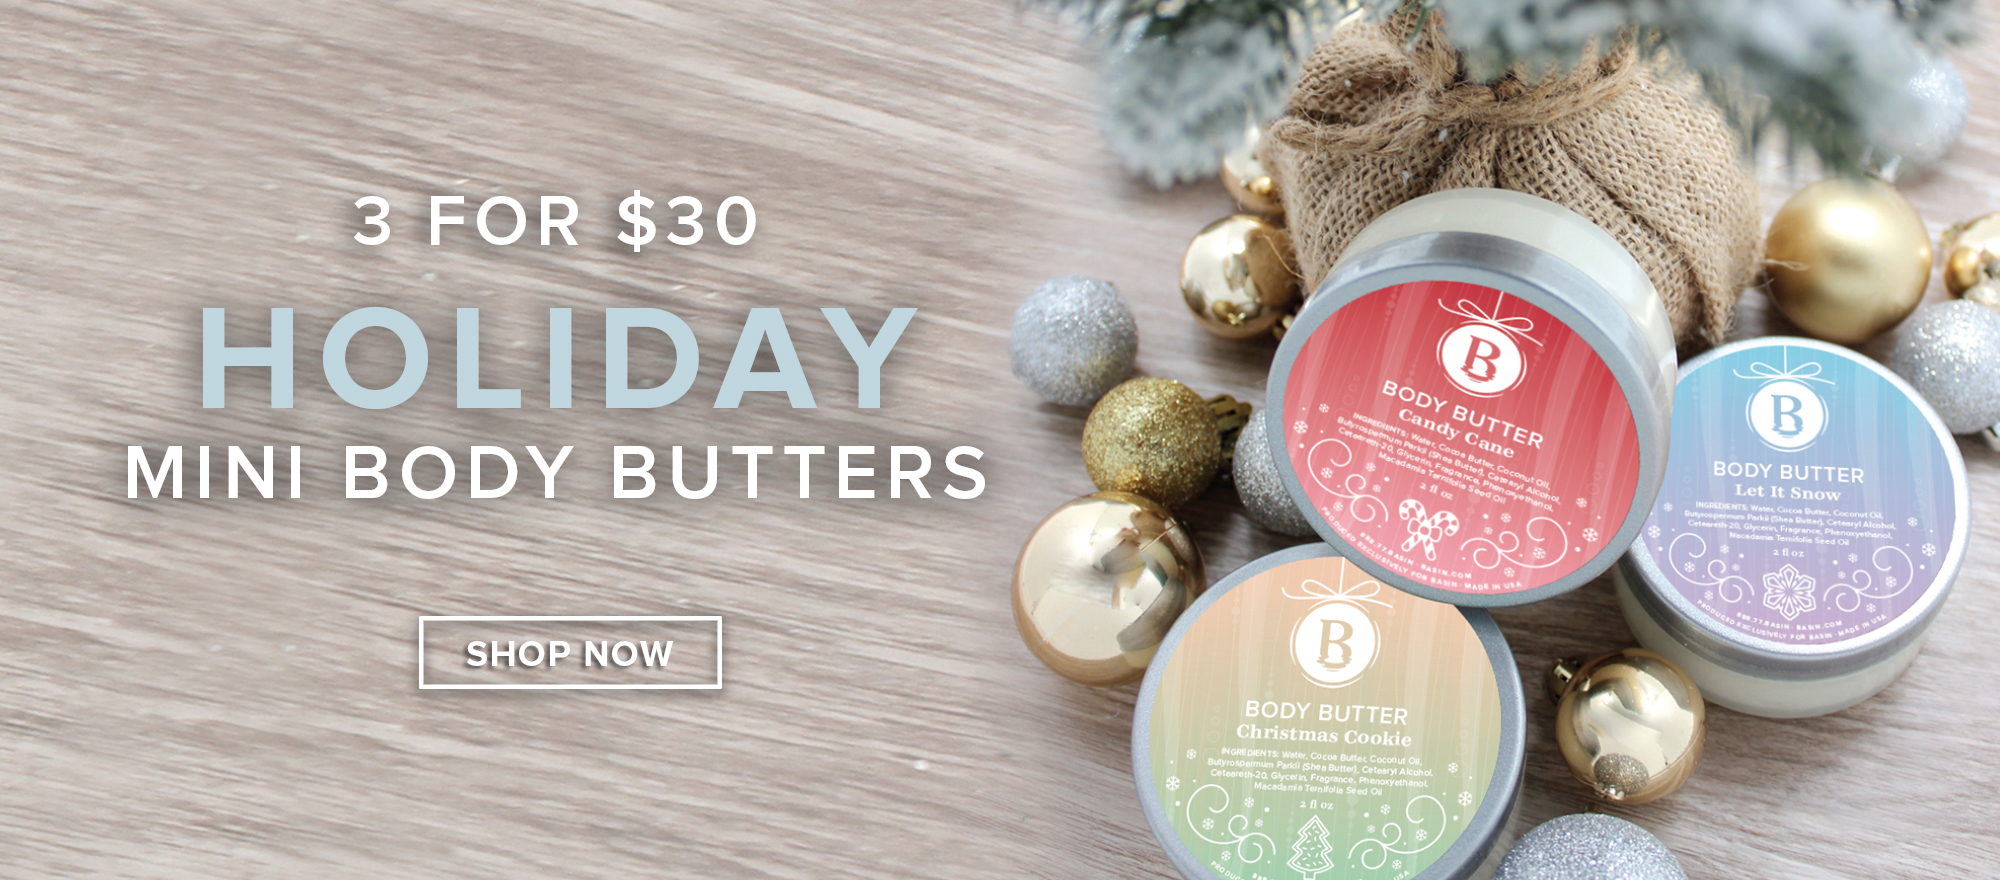 Holiday Mini Body Butters